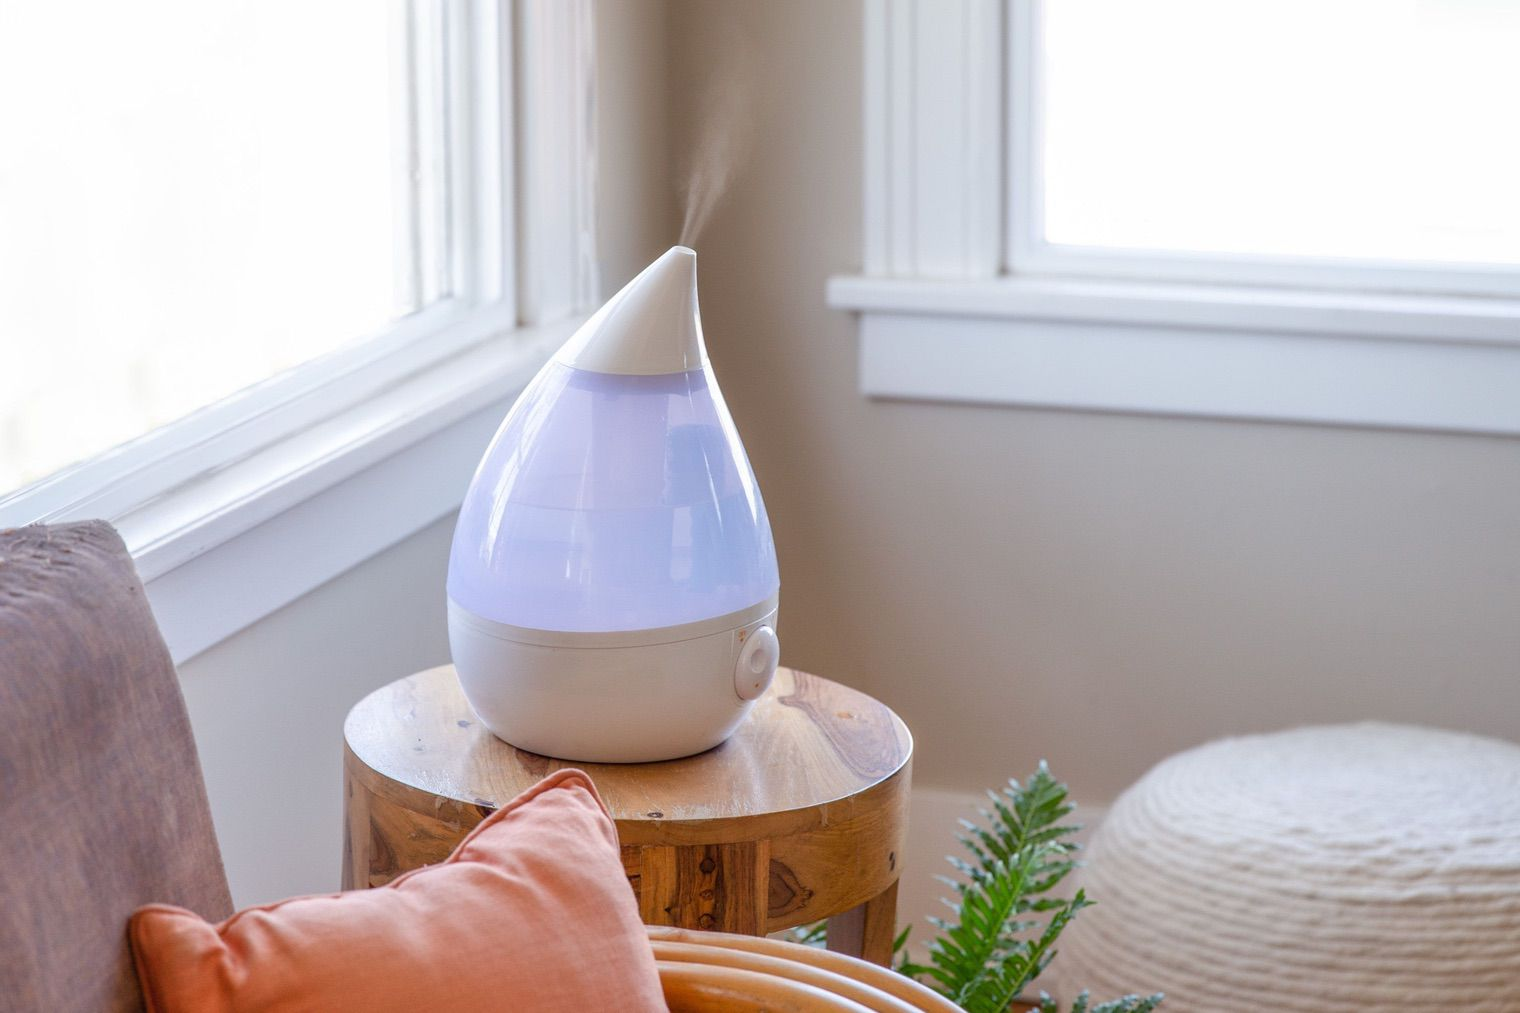 Behold: The 10 Best Humidifiers 2020 to Keep Dry Skin and Sniffles Away This Winter